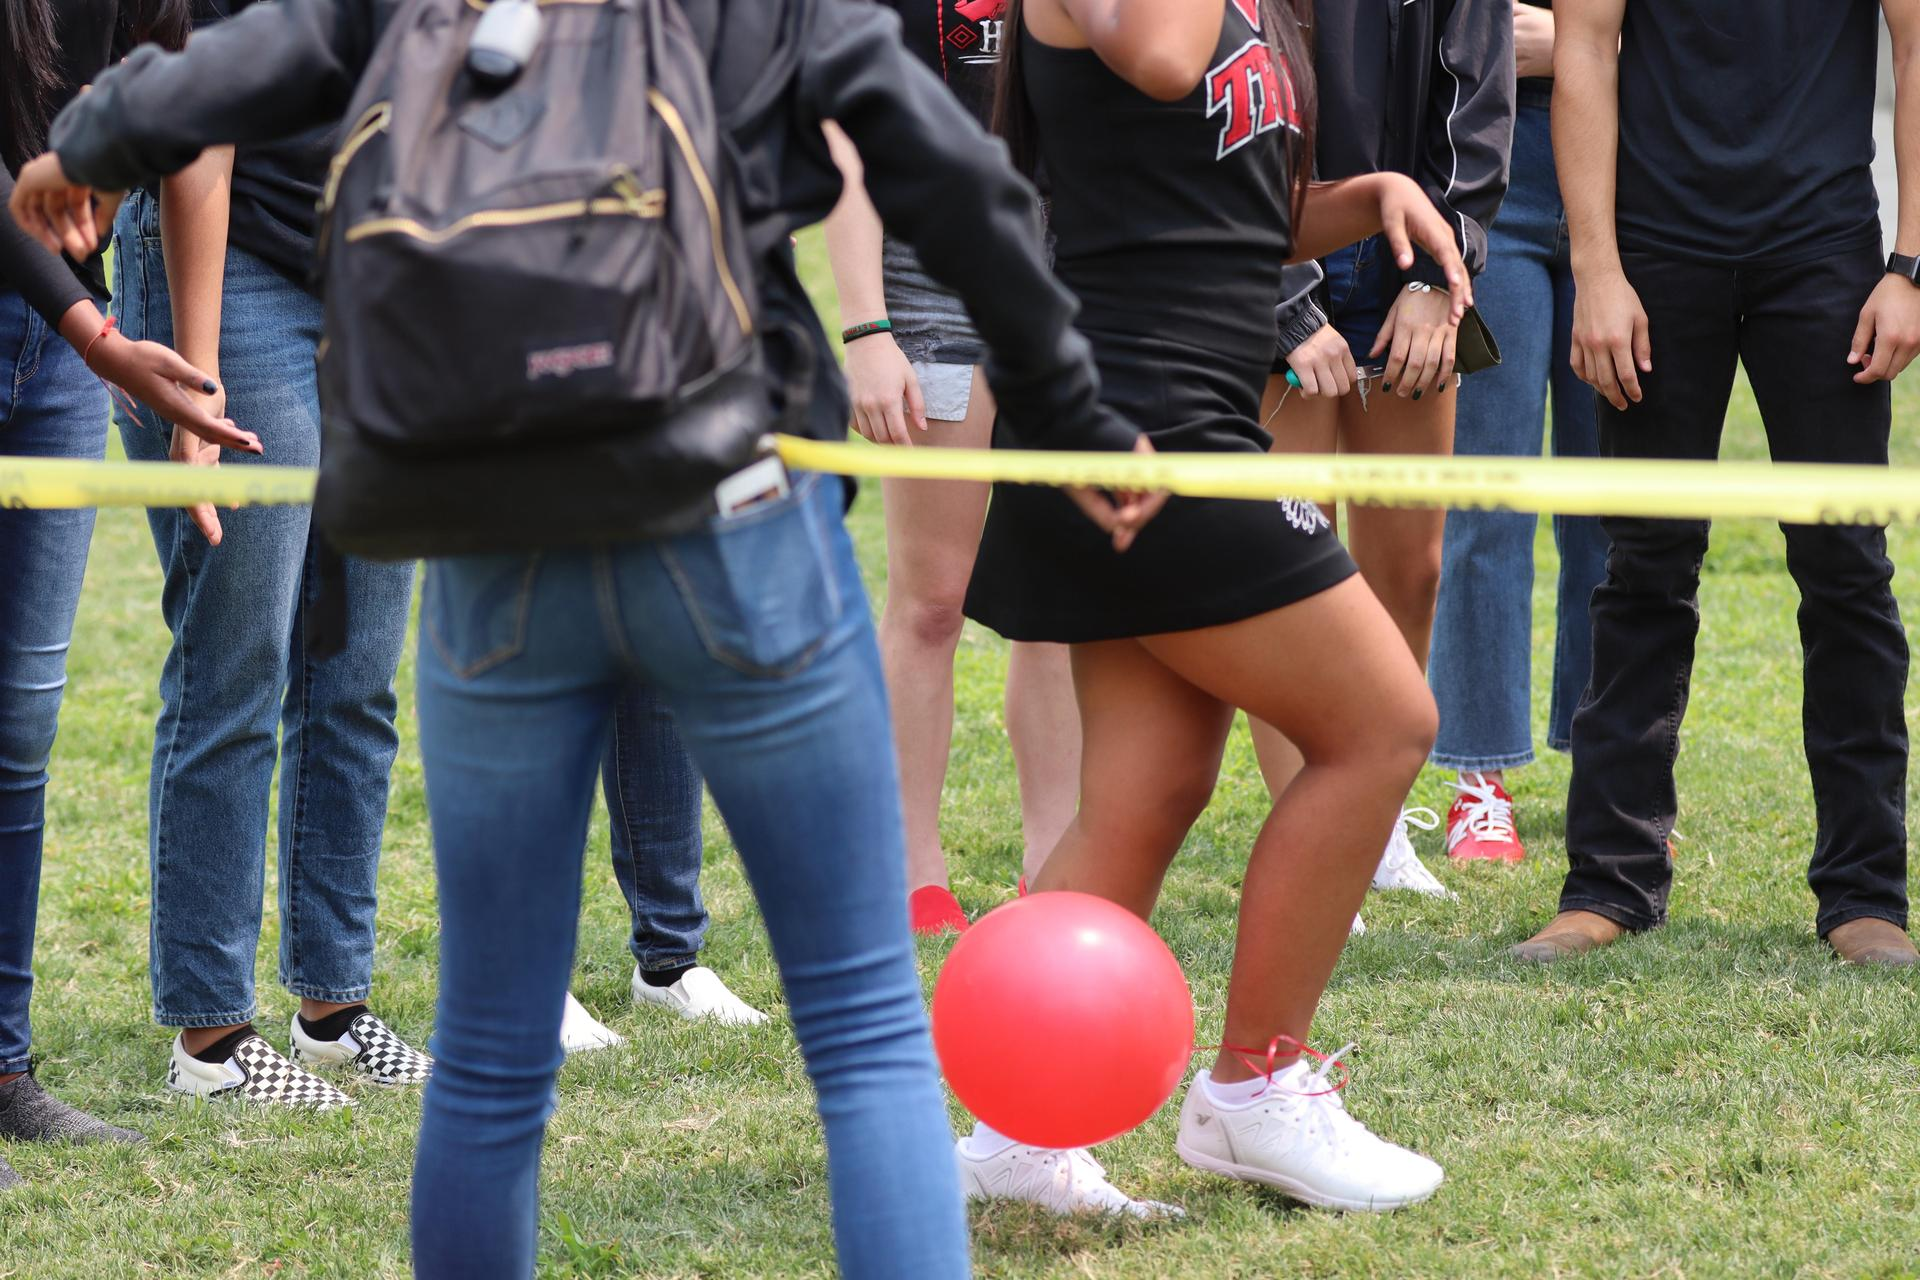 students popping the balloons tied to each other's ankles